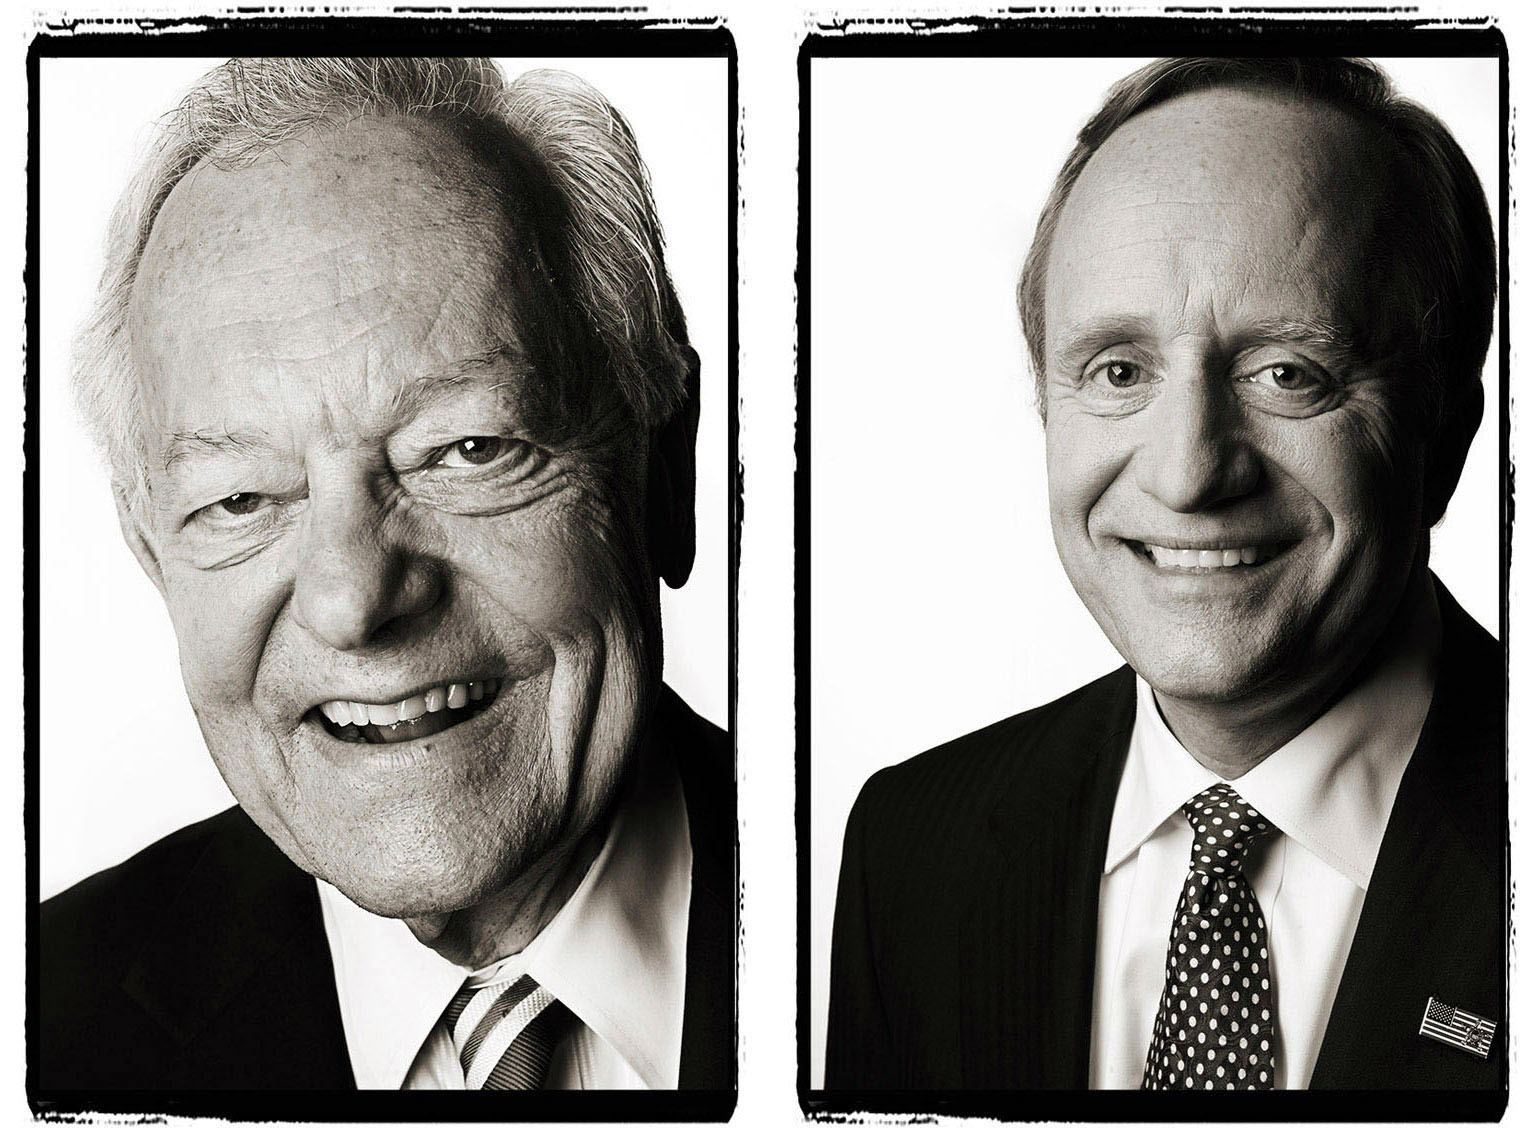 Bob Schieffer and Paul Begala